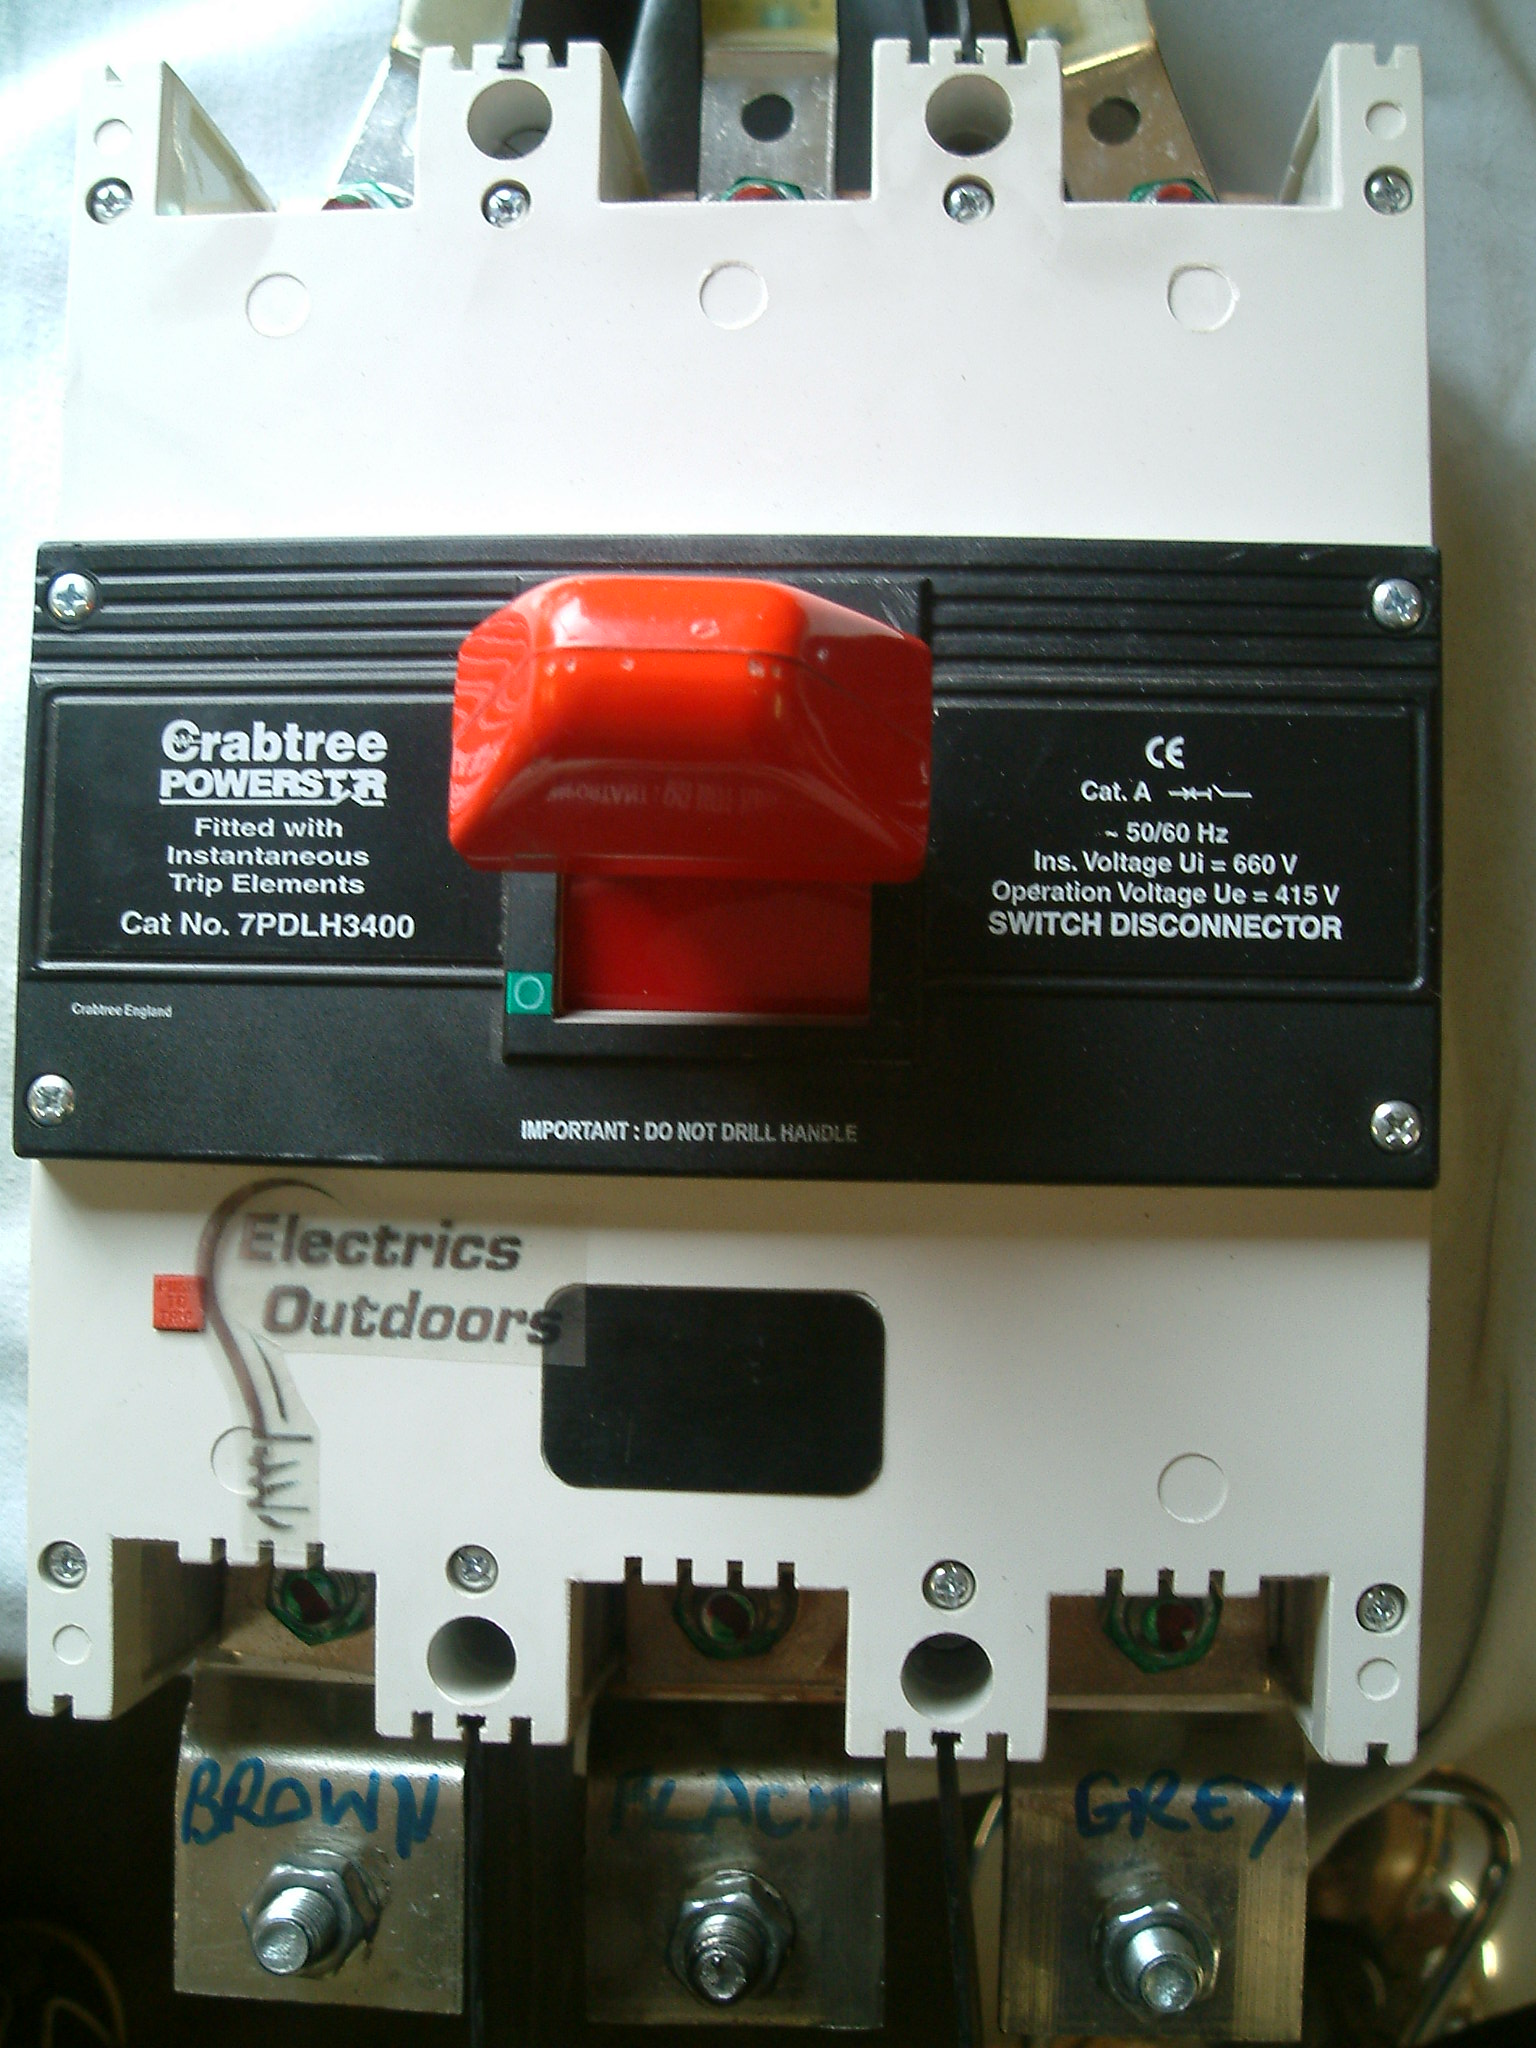 CRABTREE POWERSTAR 400 AMP 415 V MCCB 7PDLH3400 SWITCH DISCONNEC